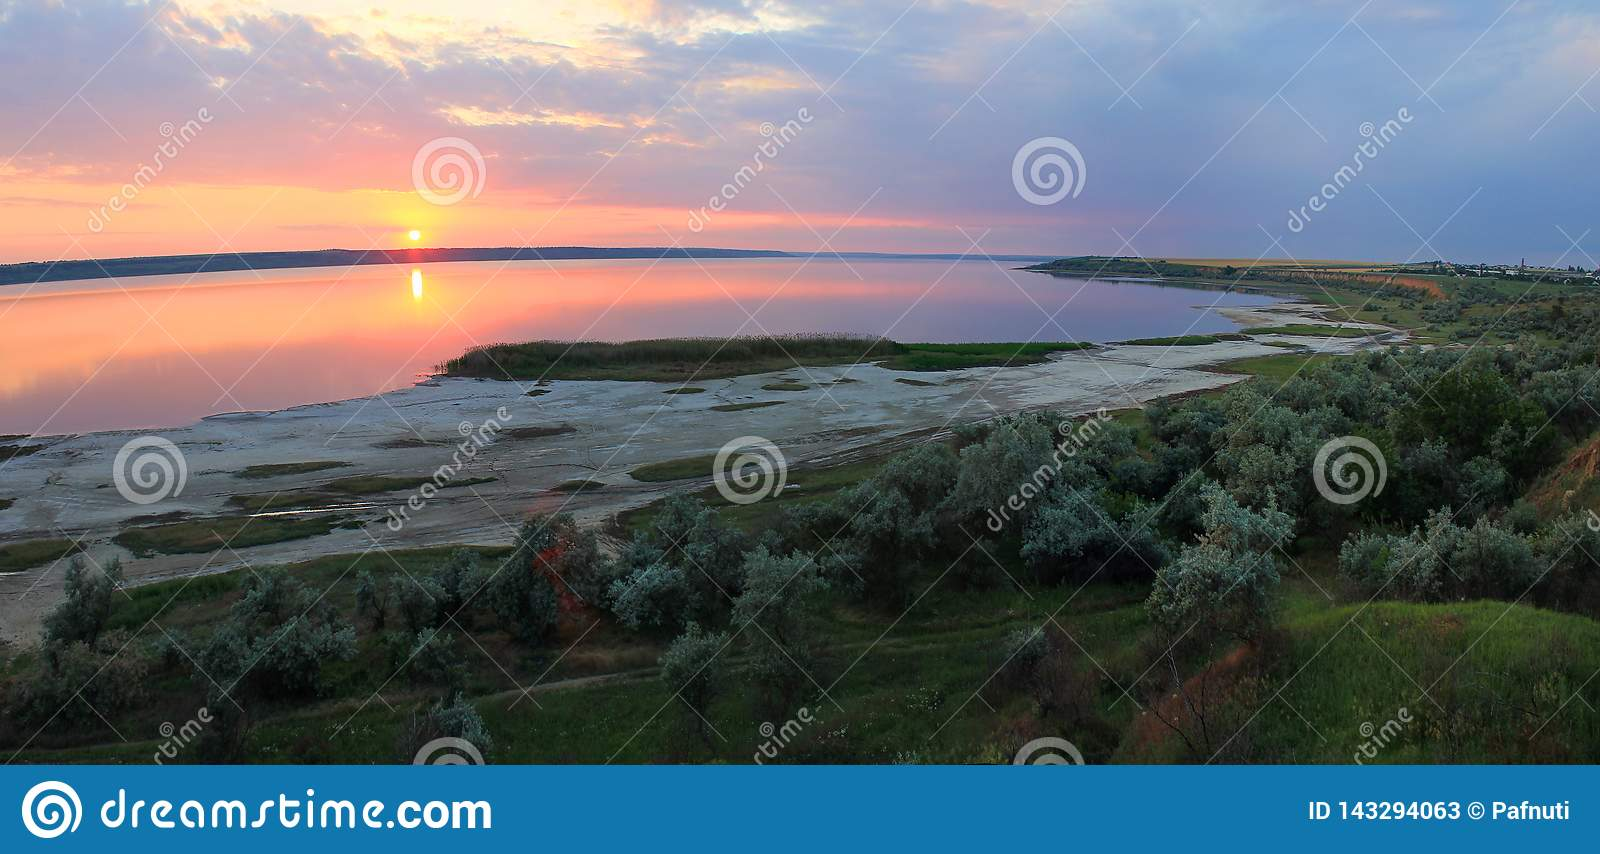 Summer landscape on the banks of the  lake at sunset